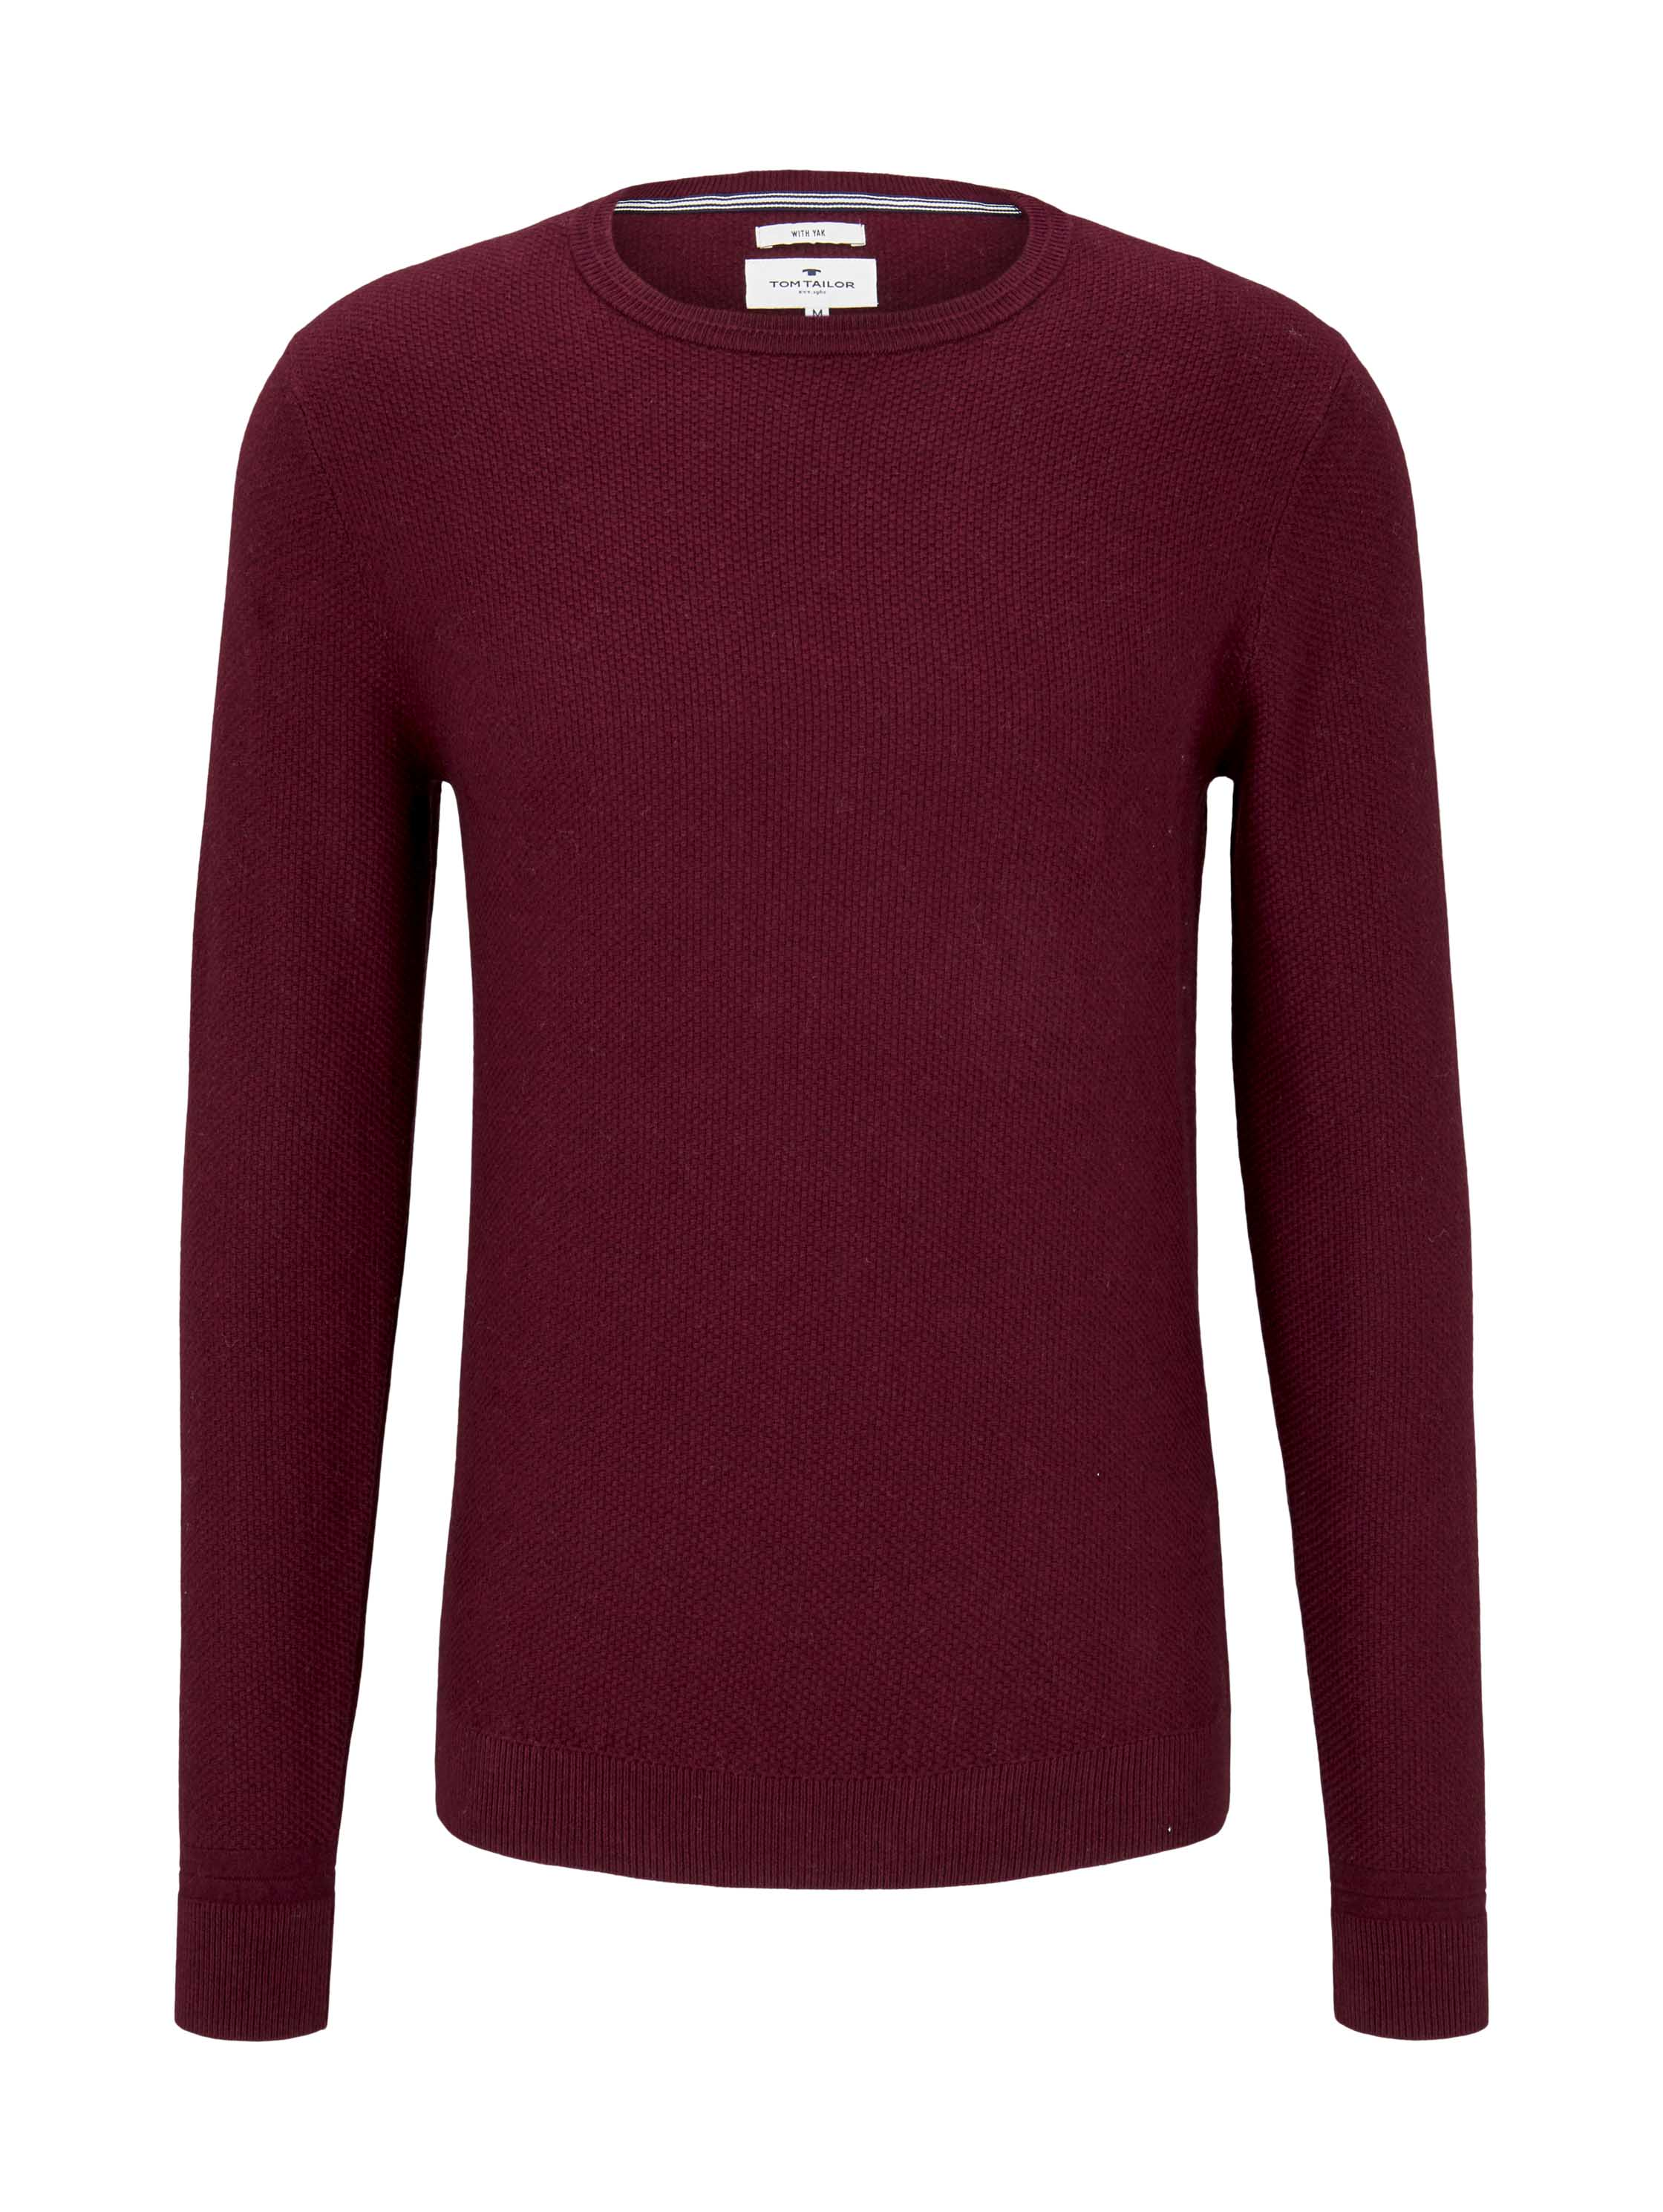 cosy sweater with yak, wine red melange